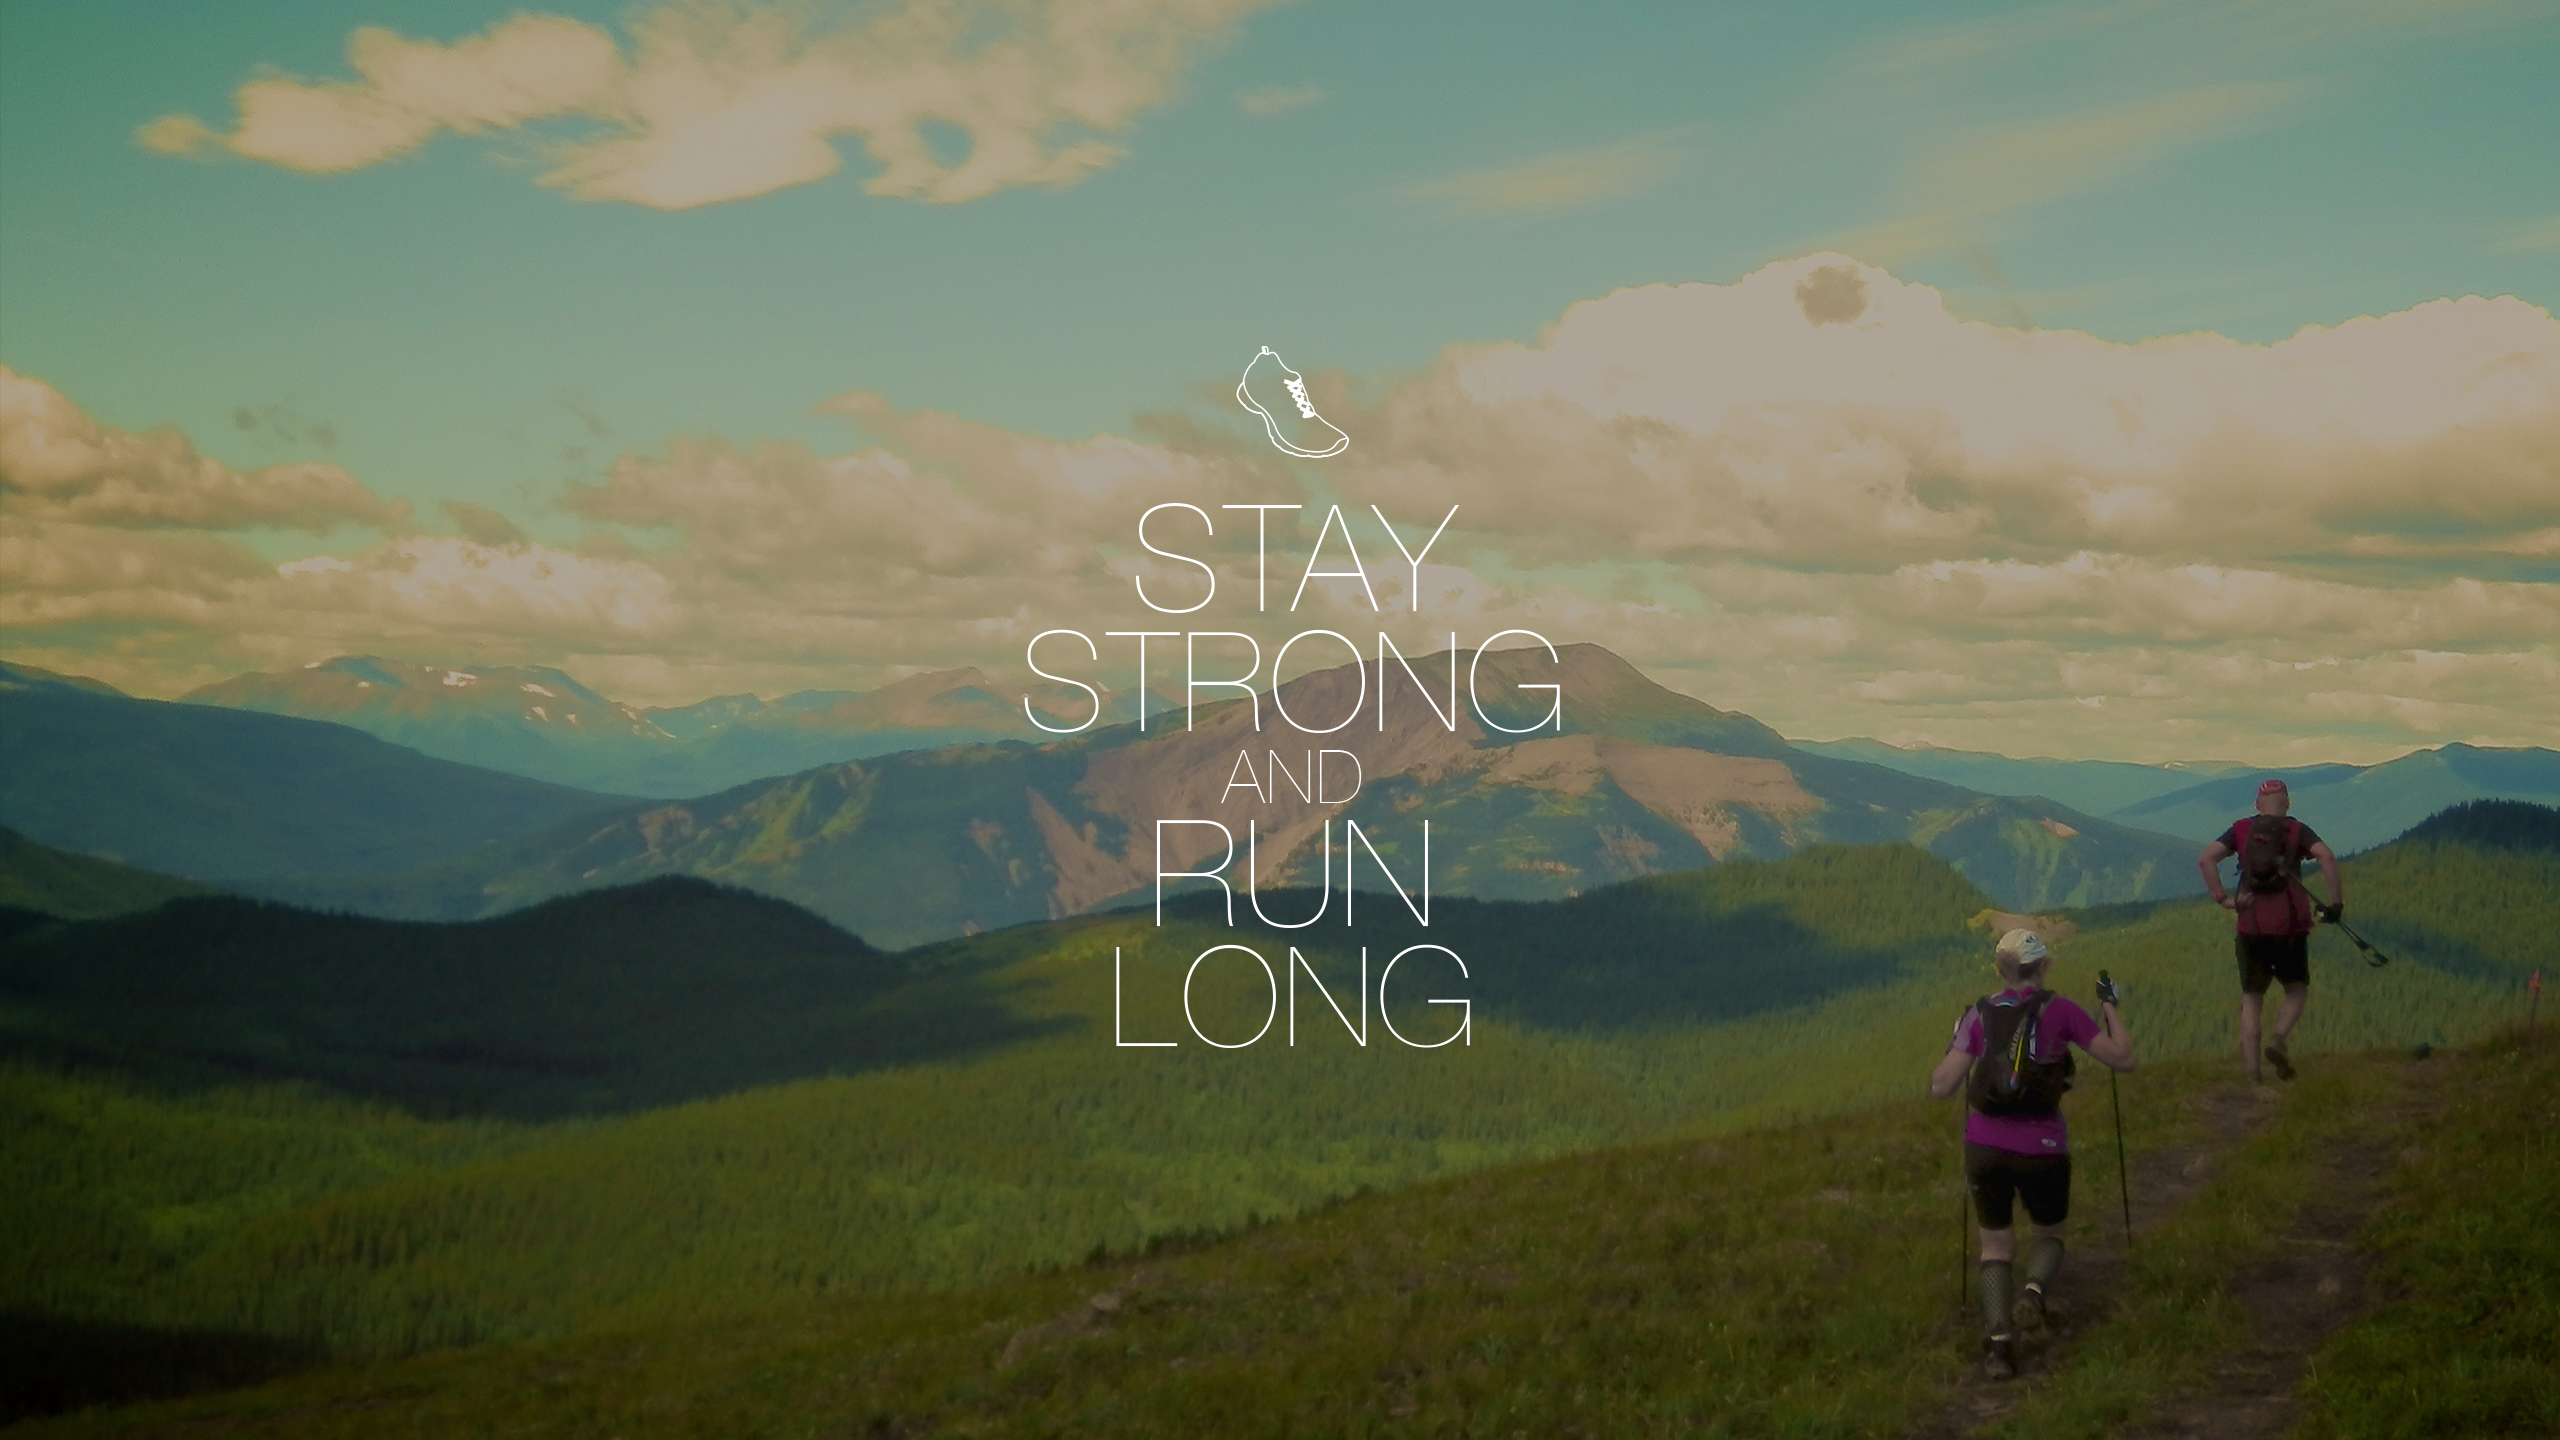 Top Wallpaper Mountain Quote - StayStrong_169_Wallpaper  Pic_706093.jpg